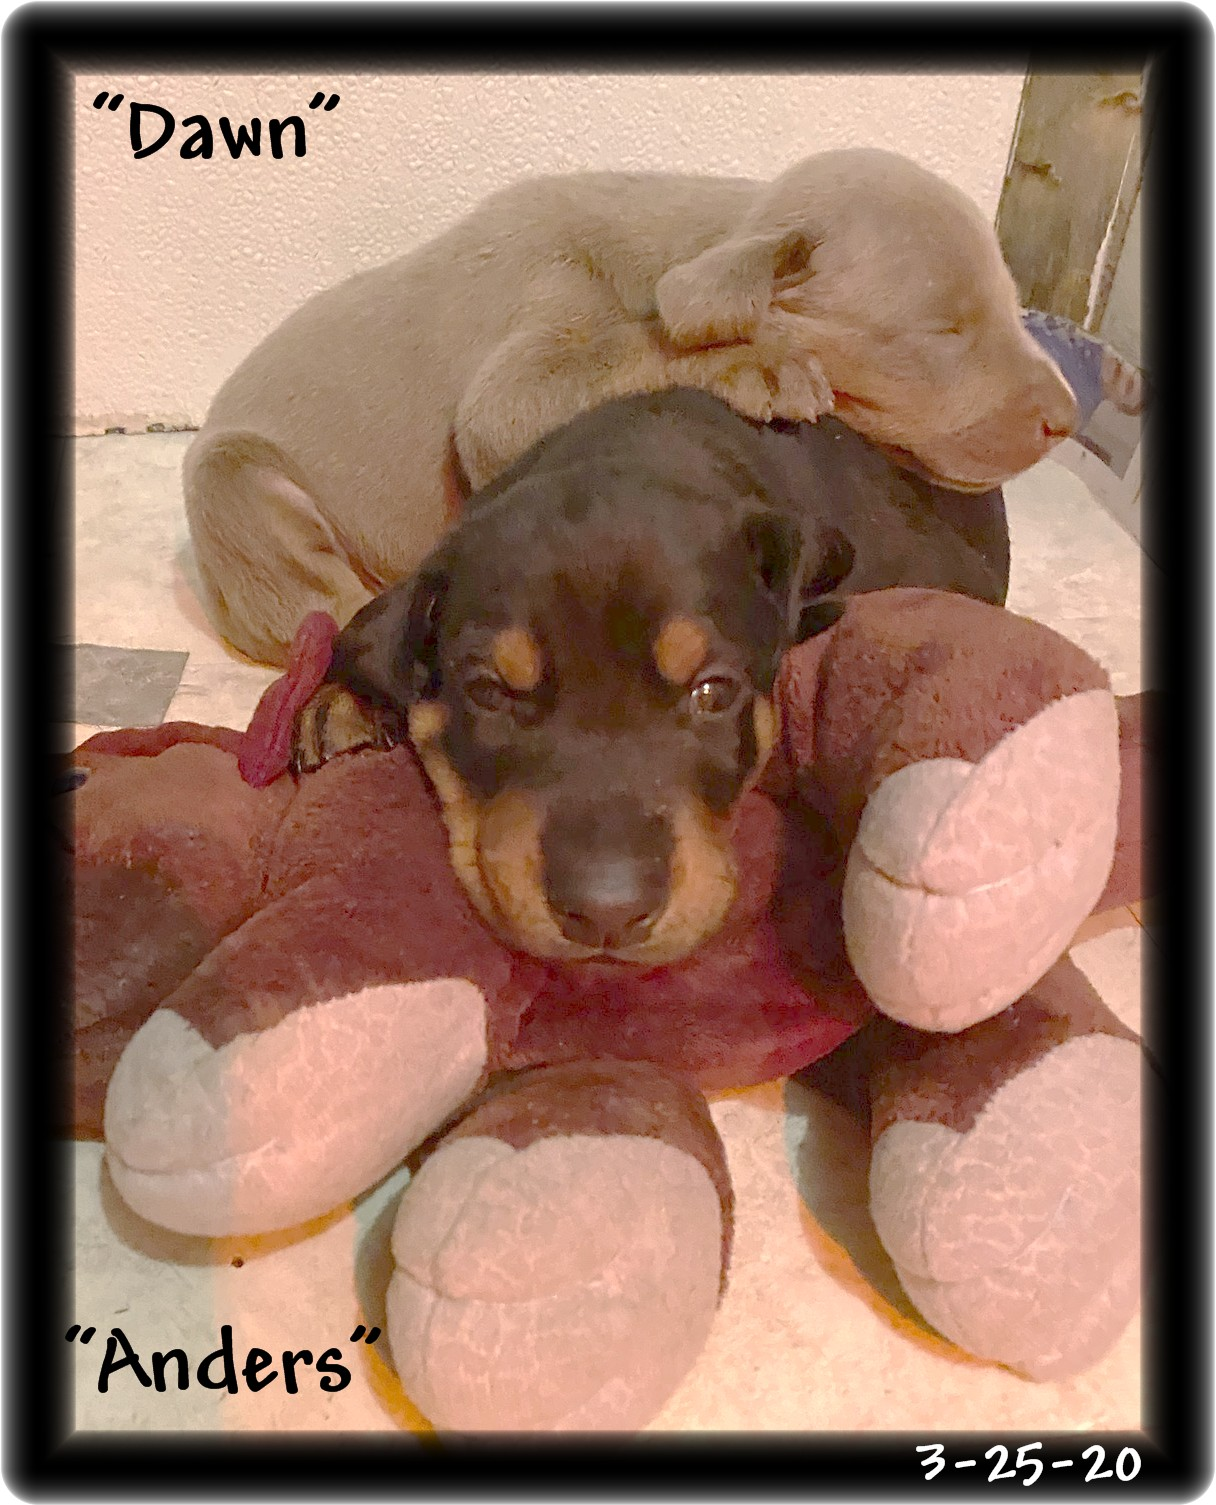 Dawn ... Miska fawn girl born 2-29-20 she sure is one of our GOLDEN KIDS ... AVAILABLE - and yes her eyes will match her beautiful primary color. After all she is a Hoytt!